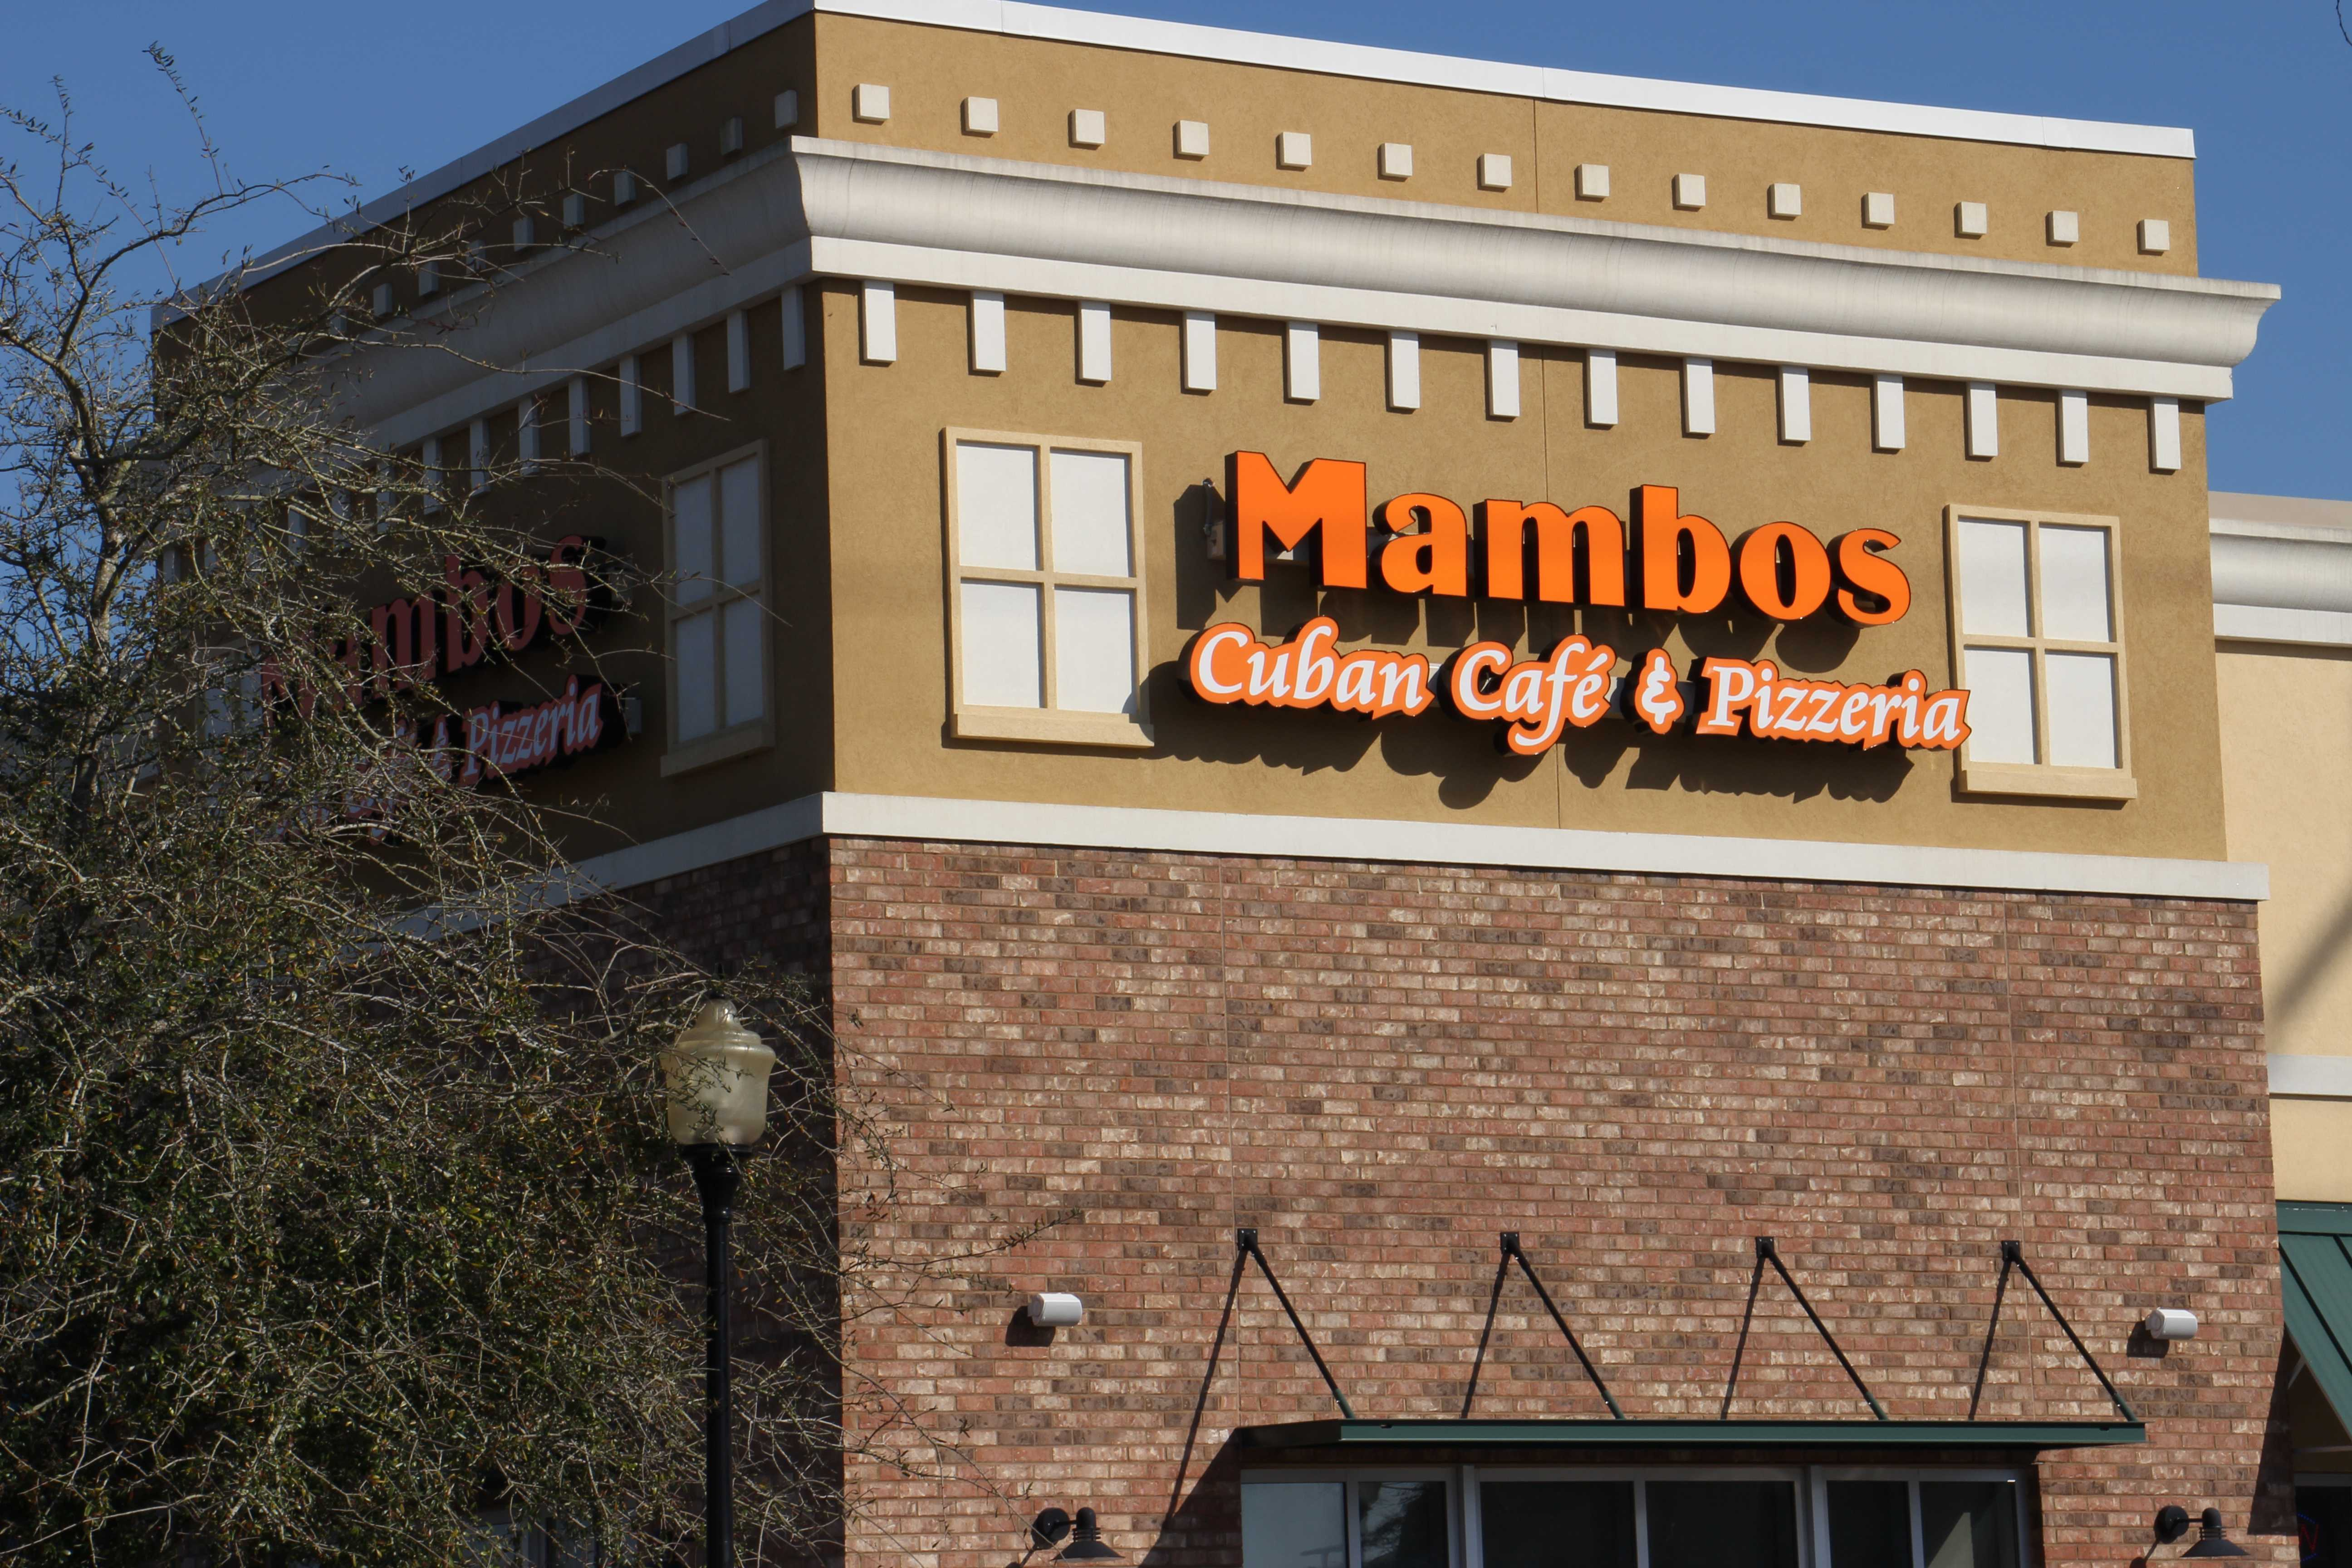 Local Eatery of the Week: Mambo's Cuban Cafe and Pizzeria